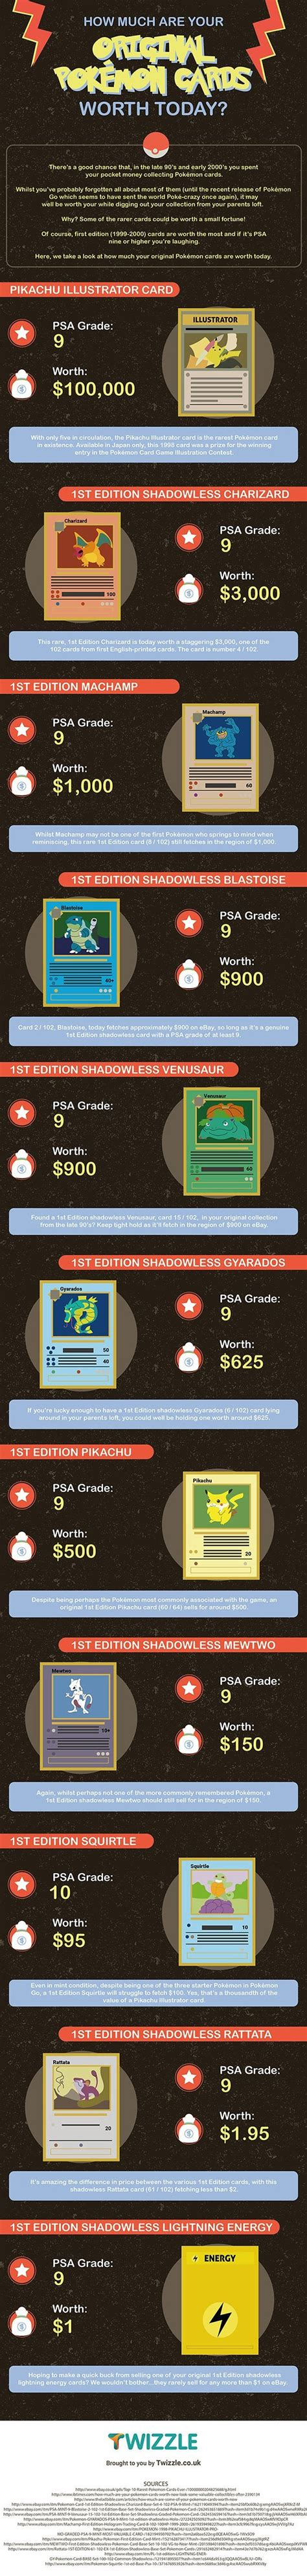 Use mavin to see how much your pokemon cards are worth. How Much are Your Old Pokemon Cards Worth? : Infographics